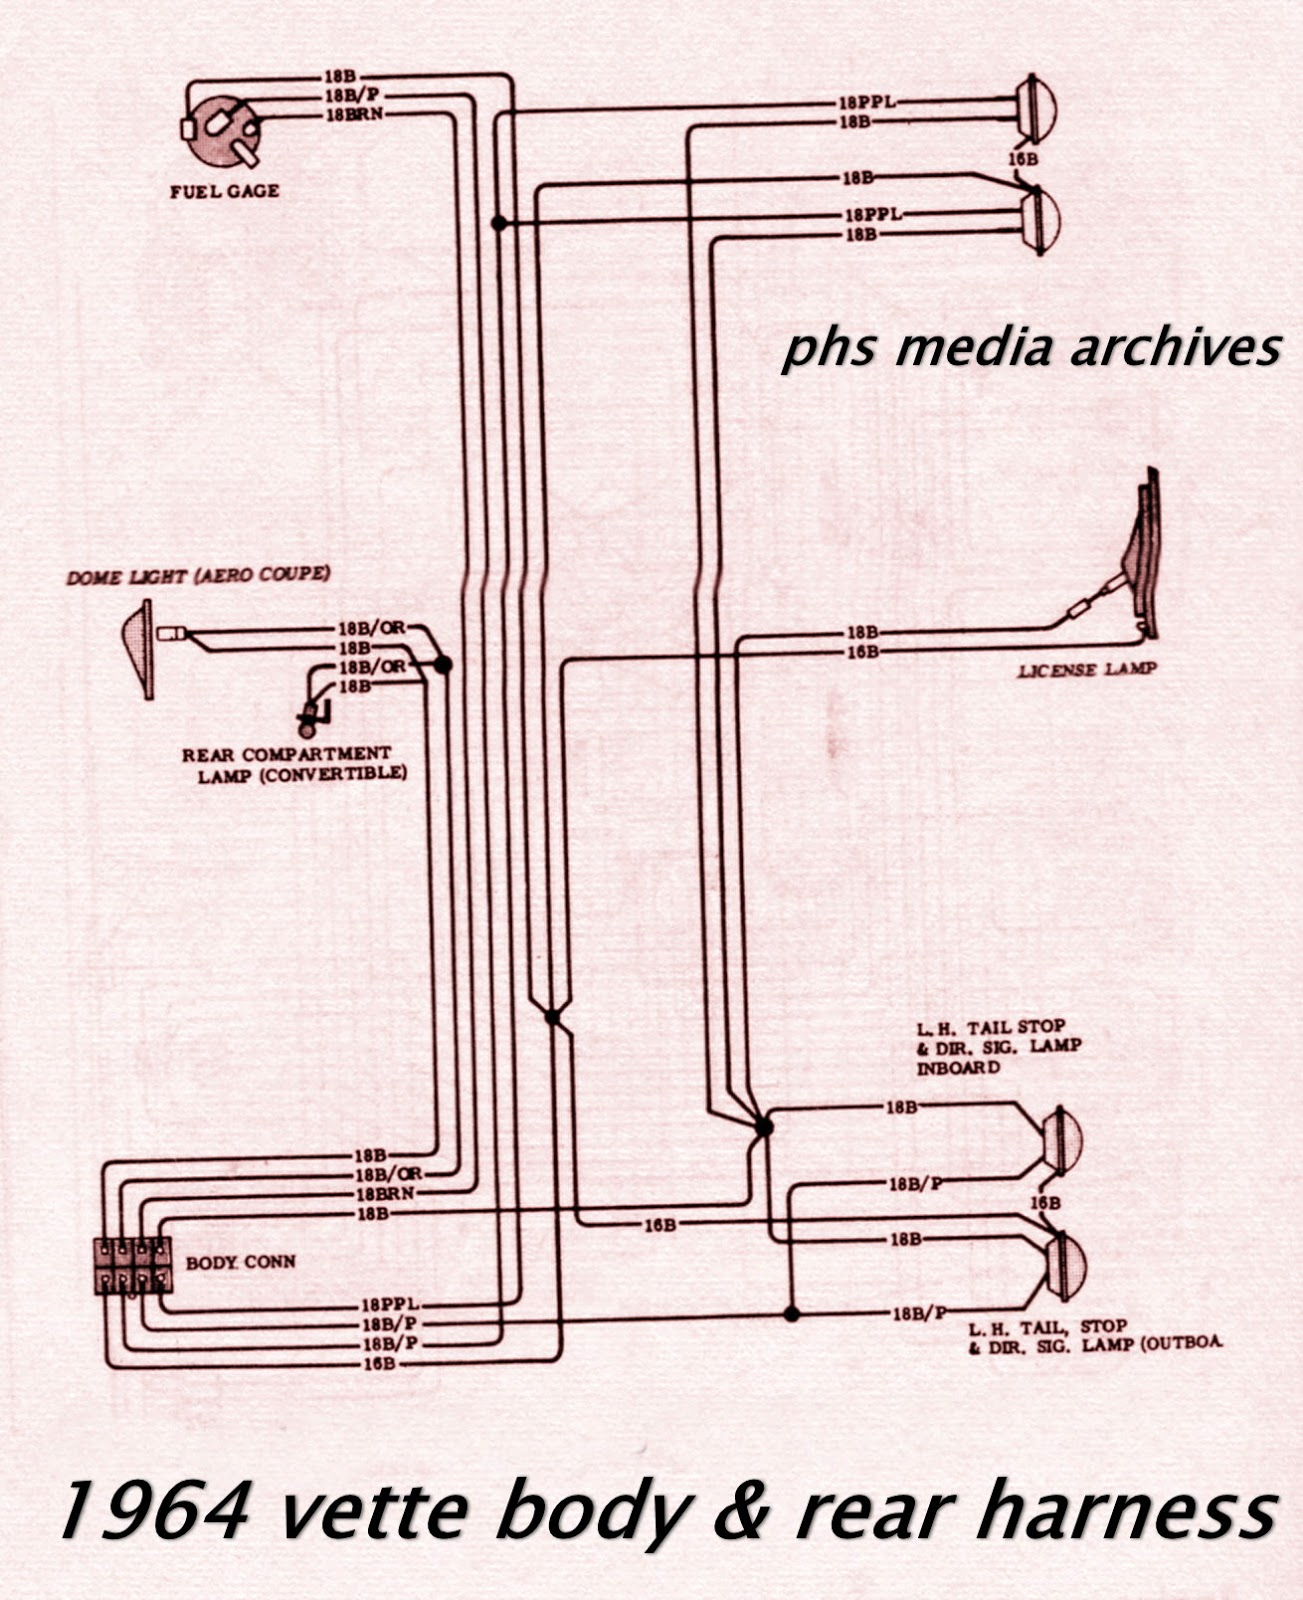 On The Block 1963 Shelby Cobra Csx2135 Update With Sale Price Spartan 300 Sewer Machine Wire Diagram Click Image For Larger Size